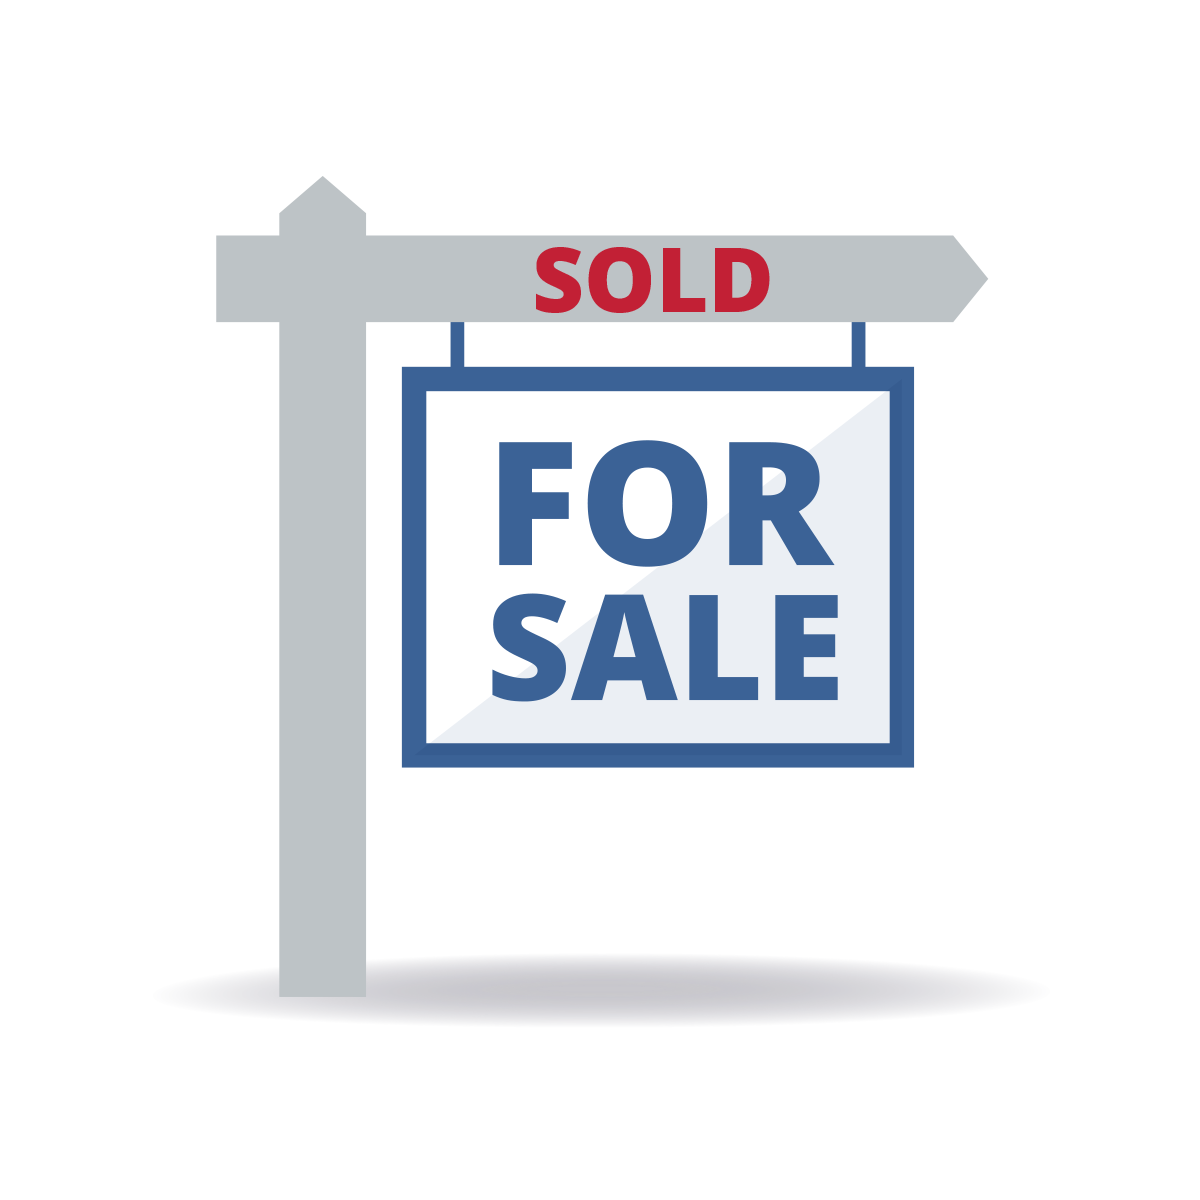 For sale sign illustration